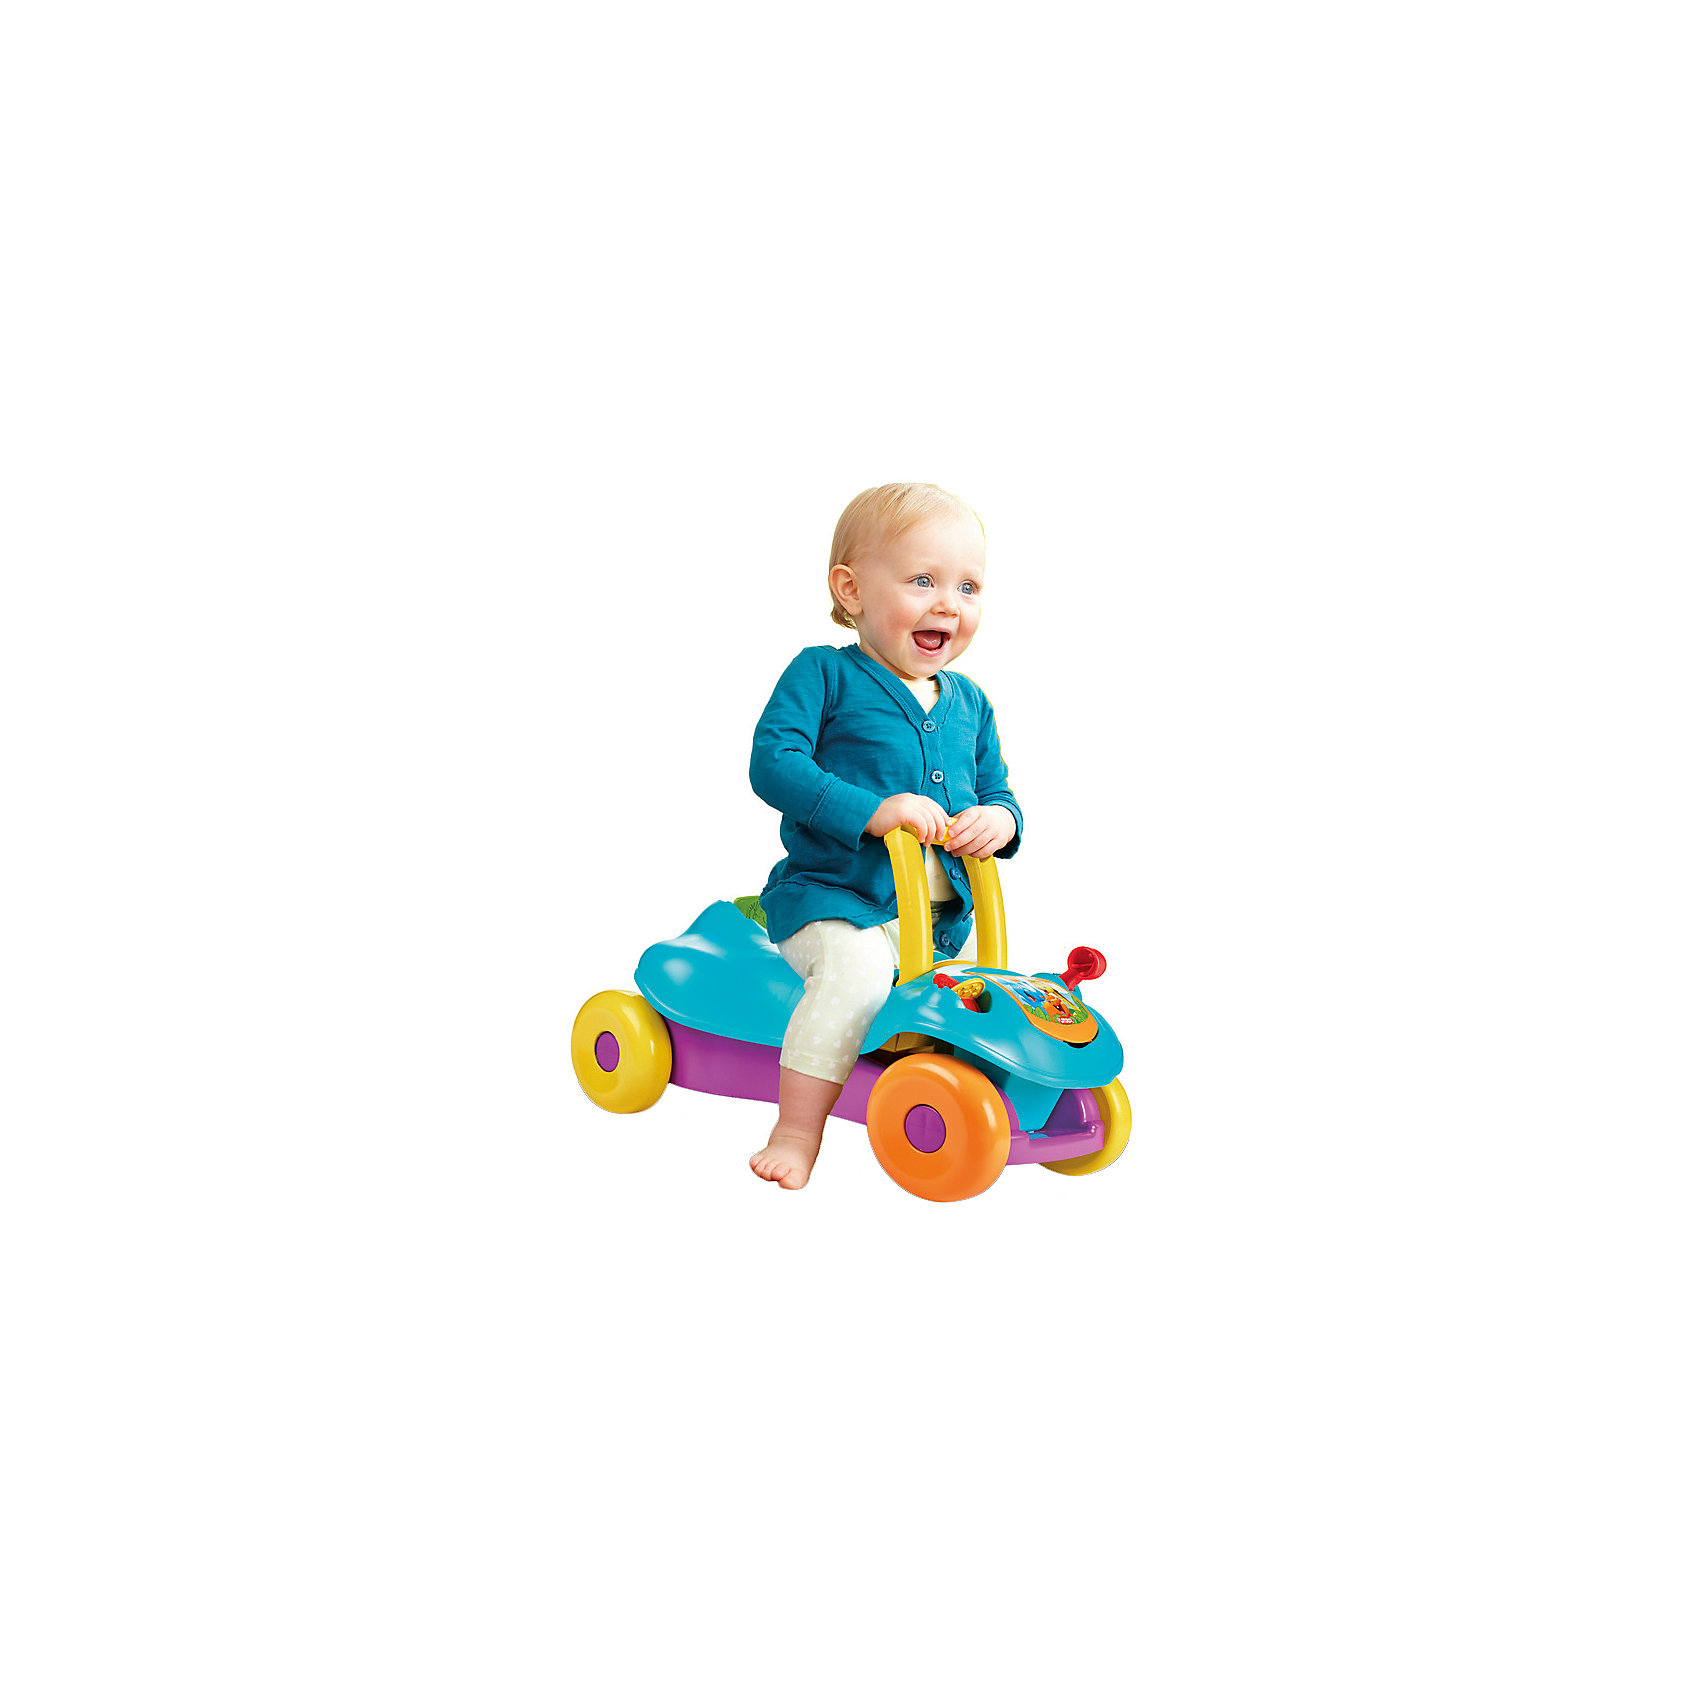 Ходунок-каталка 2 в 1 PLAYSKOOL, синий (Hasbro)